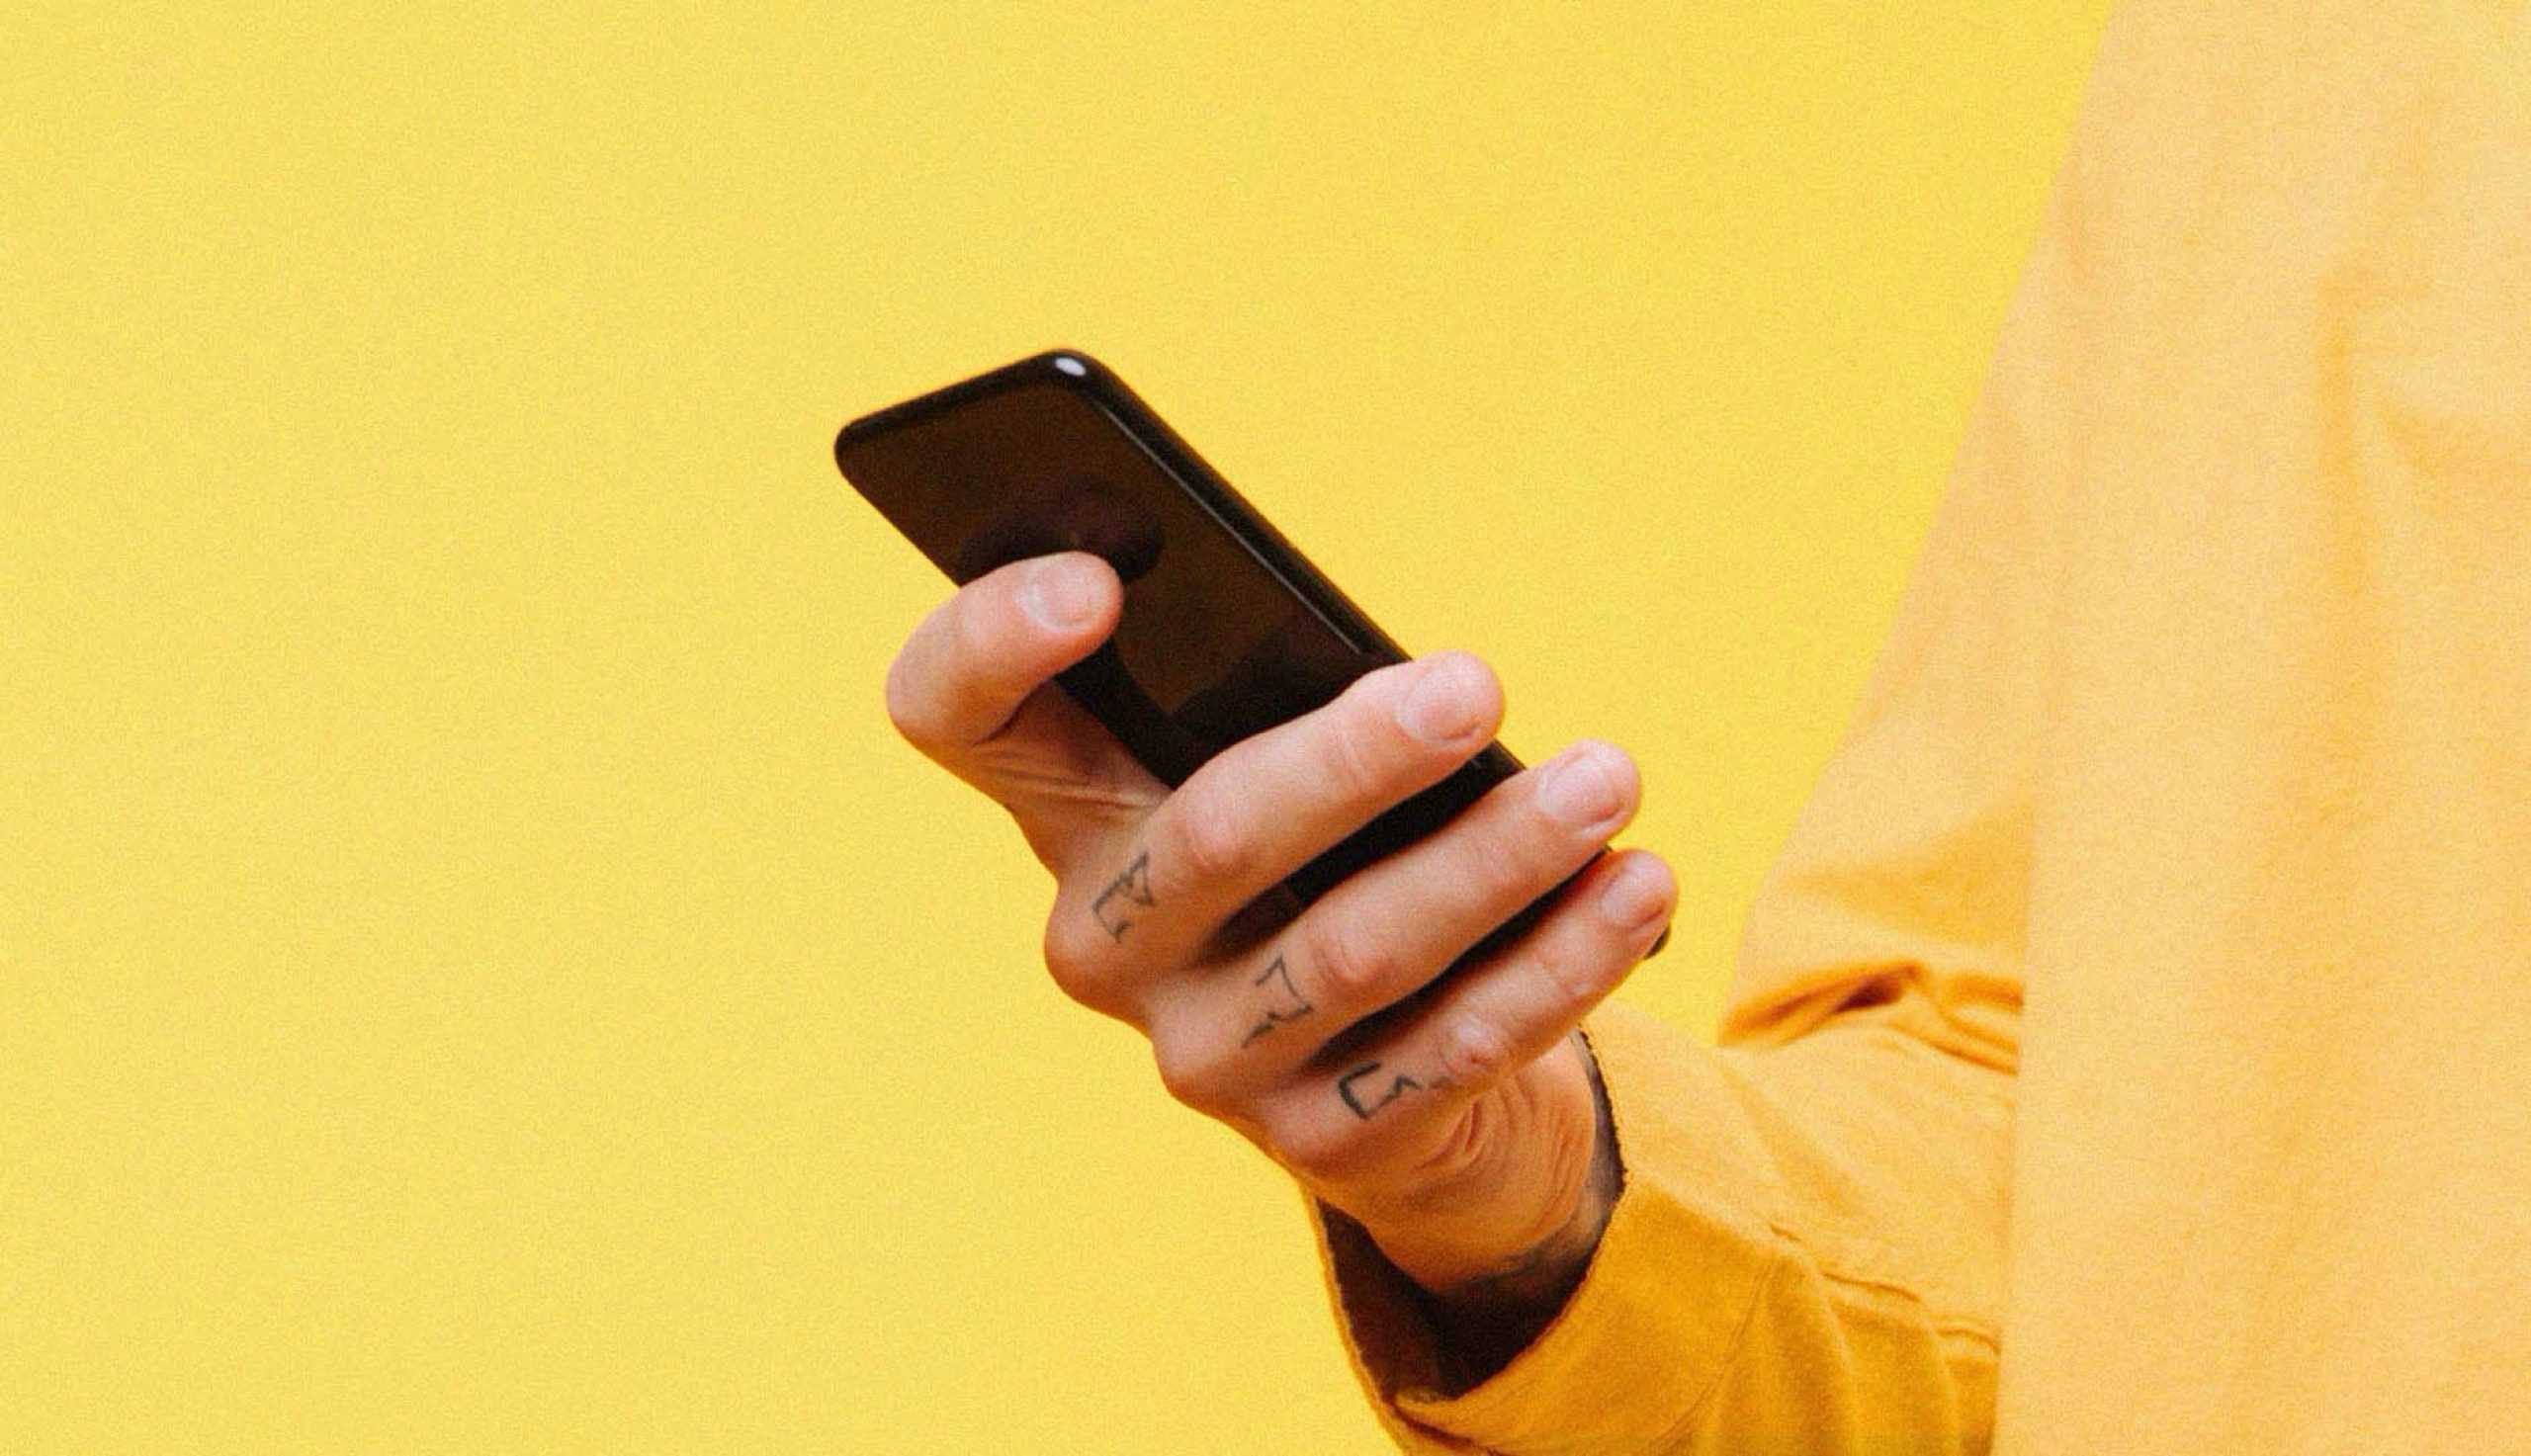 man's hand holding a phone on yellow background